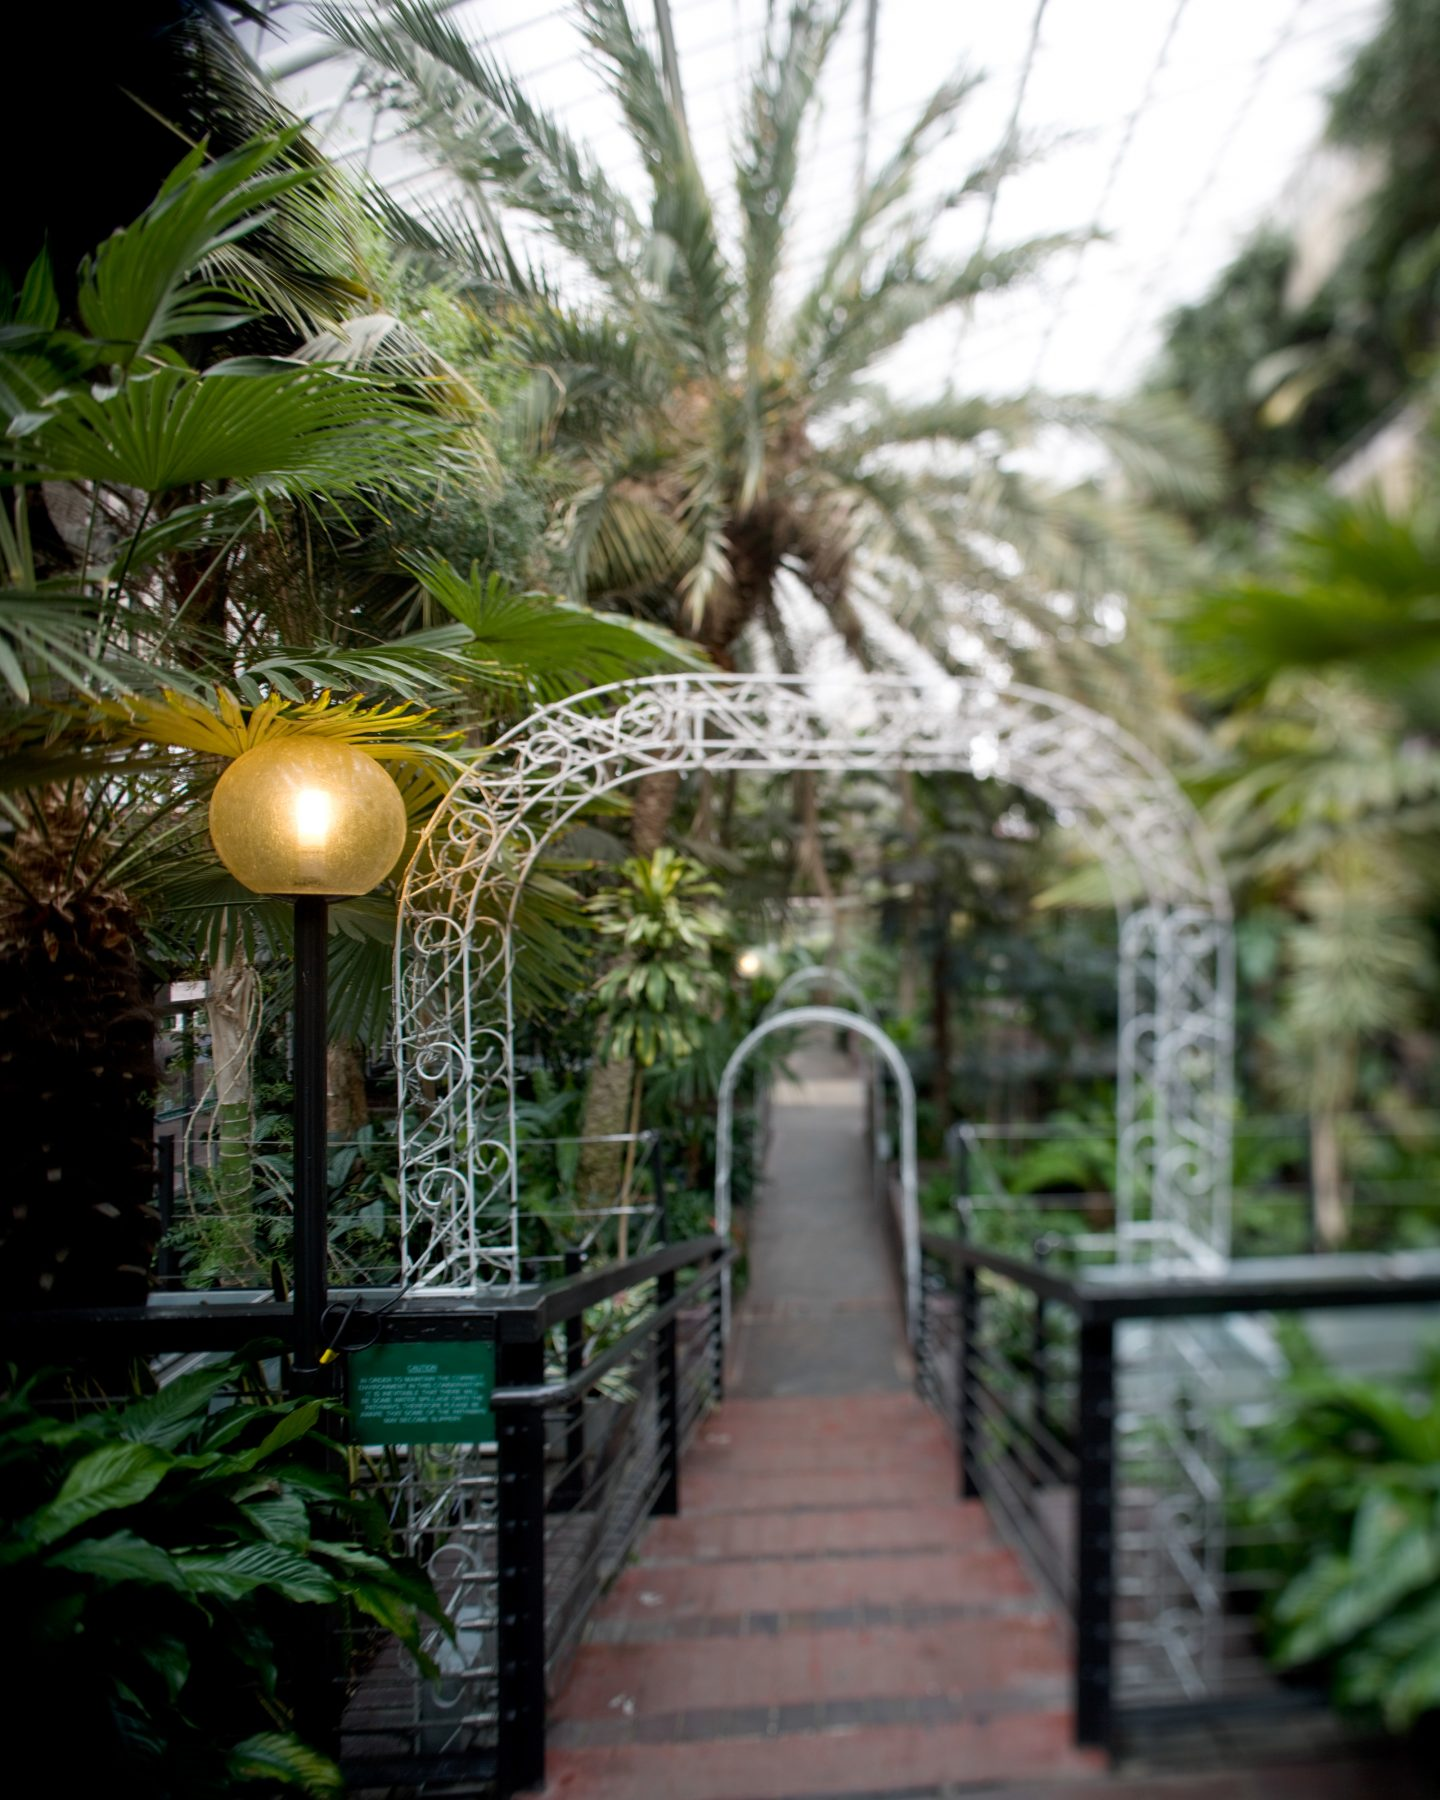 IGNANT-Travel-Luke-Hayes-The-Barbican-Conservatory-014